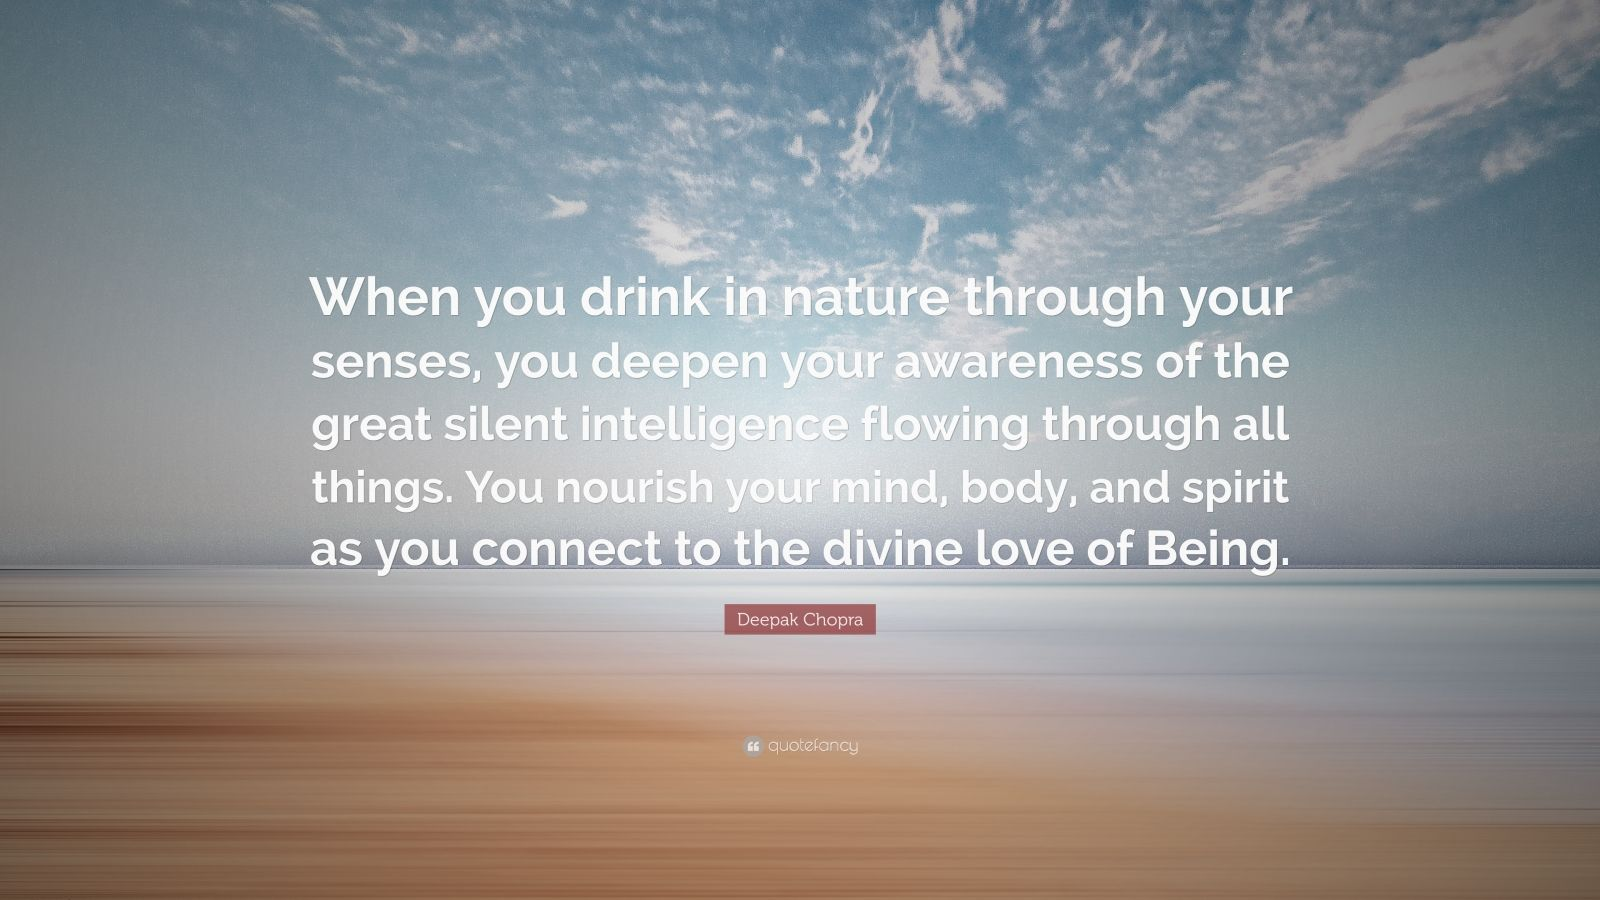 """Deepak Chopra Quote: """"When you drink in nature through your senses, you deepen your awareness of the great silent intelligence flowing through all things. You nourish your mind, body, and spirit as you connect to the divine love of Being."""""""